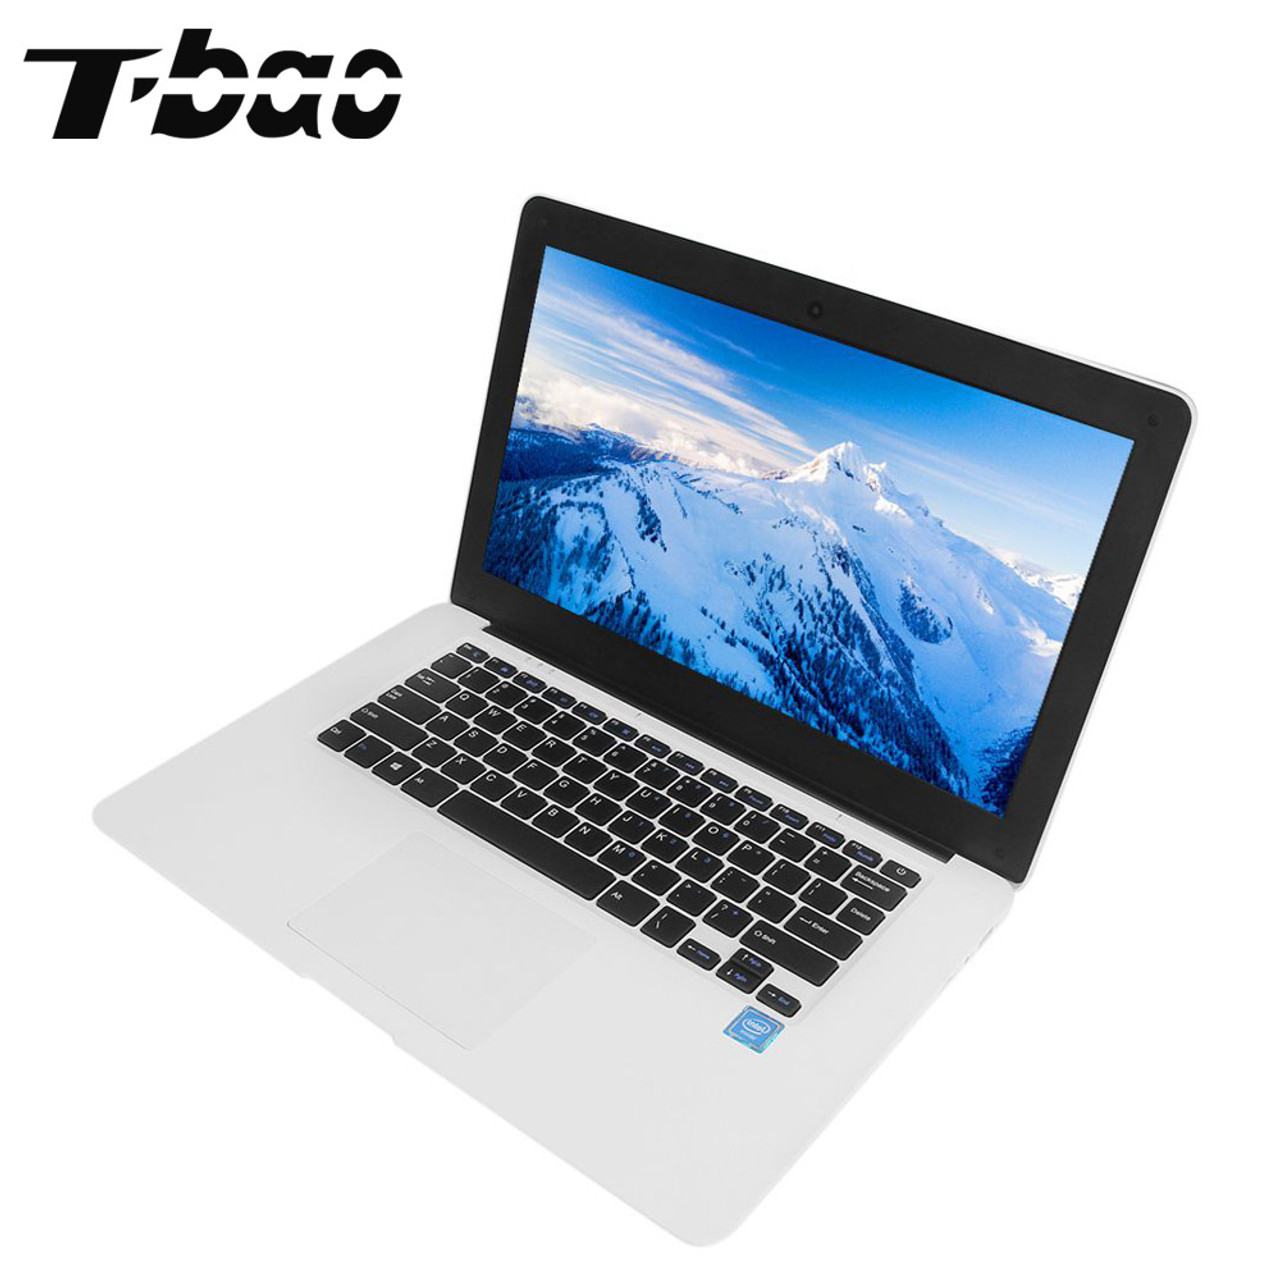 T Bao Tbook X7 Computers Laptops 141 Inch 2gb Ddr3 Ram 32gb Emmc Laptop Storage Intel